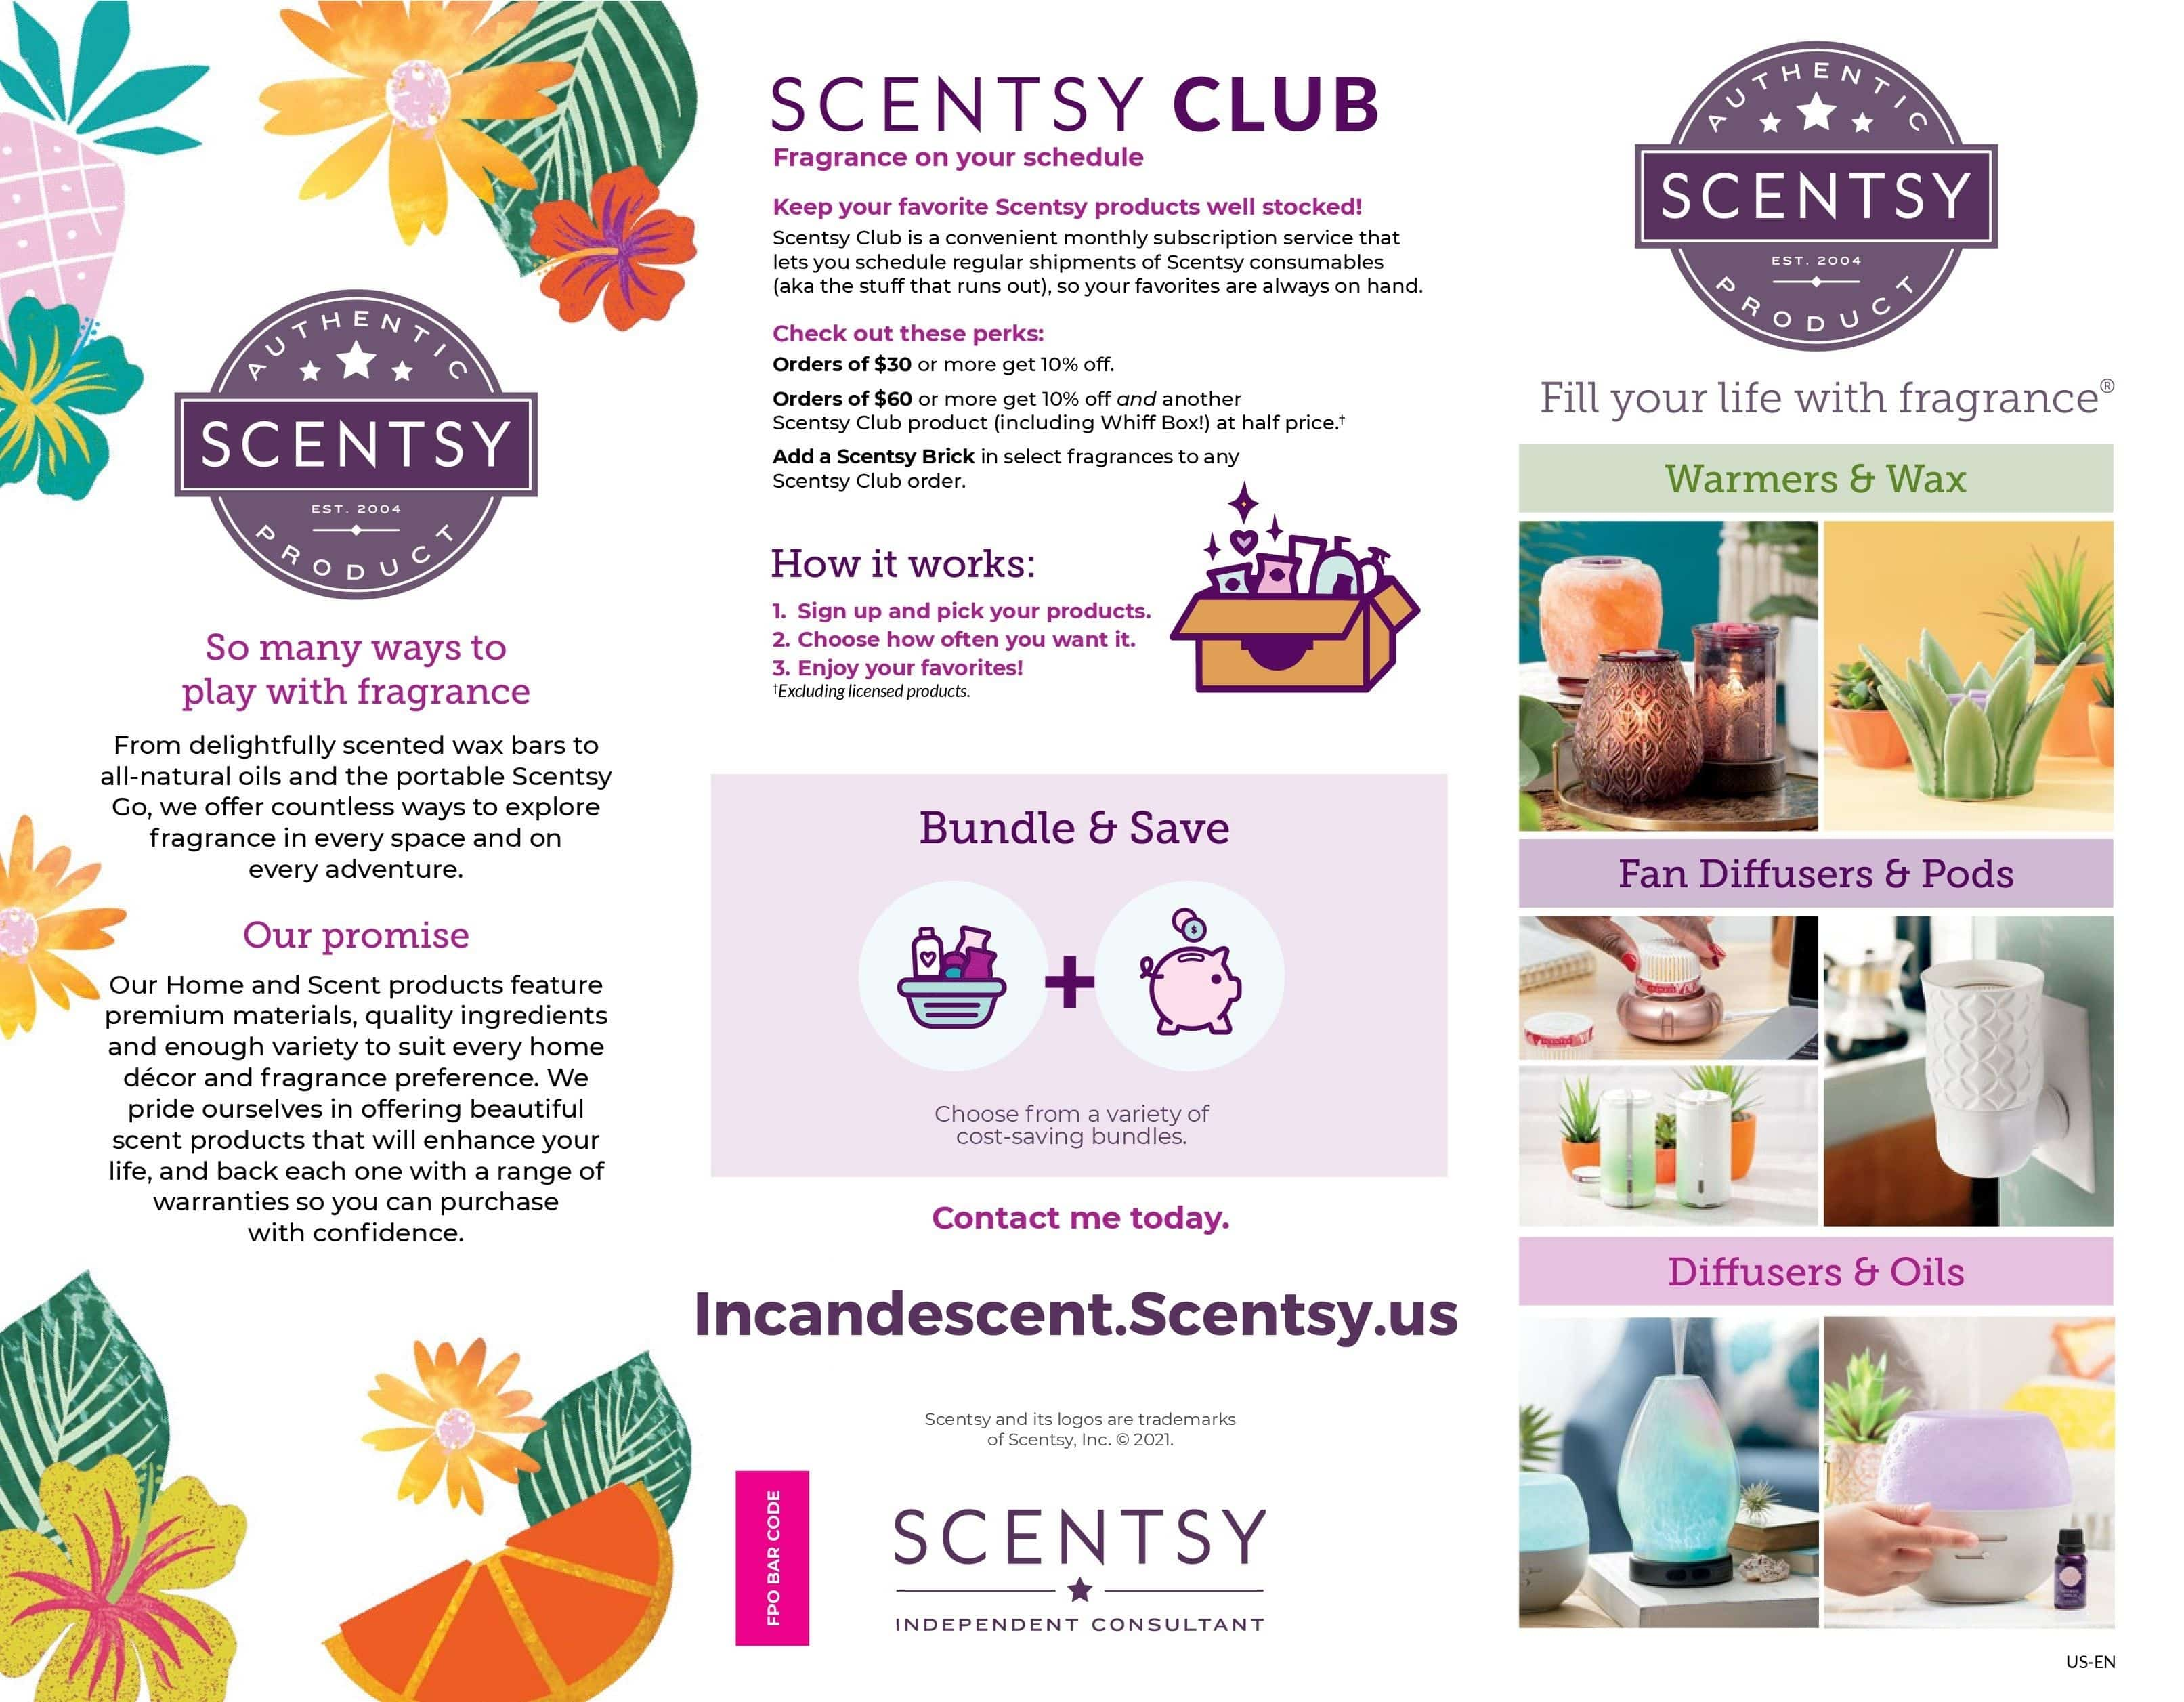 SCENTSY FRAGRANCE SYSTEMS PAGE 2 INFO   Scentsy Candles, Warmers, Scentsy Fragrances & All Scentsy Products   Scentsy® Online Store   Scentsy Warmers & Scents   Incandescent.Scentsy.us